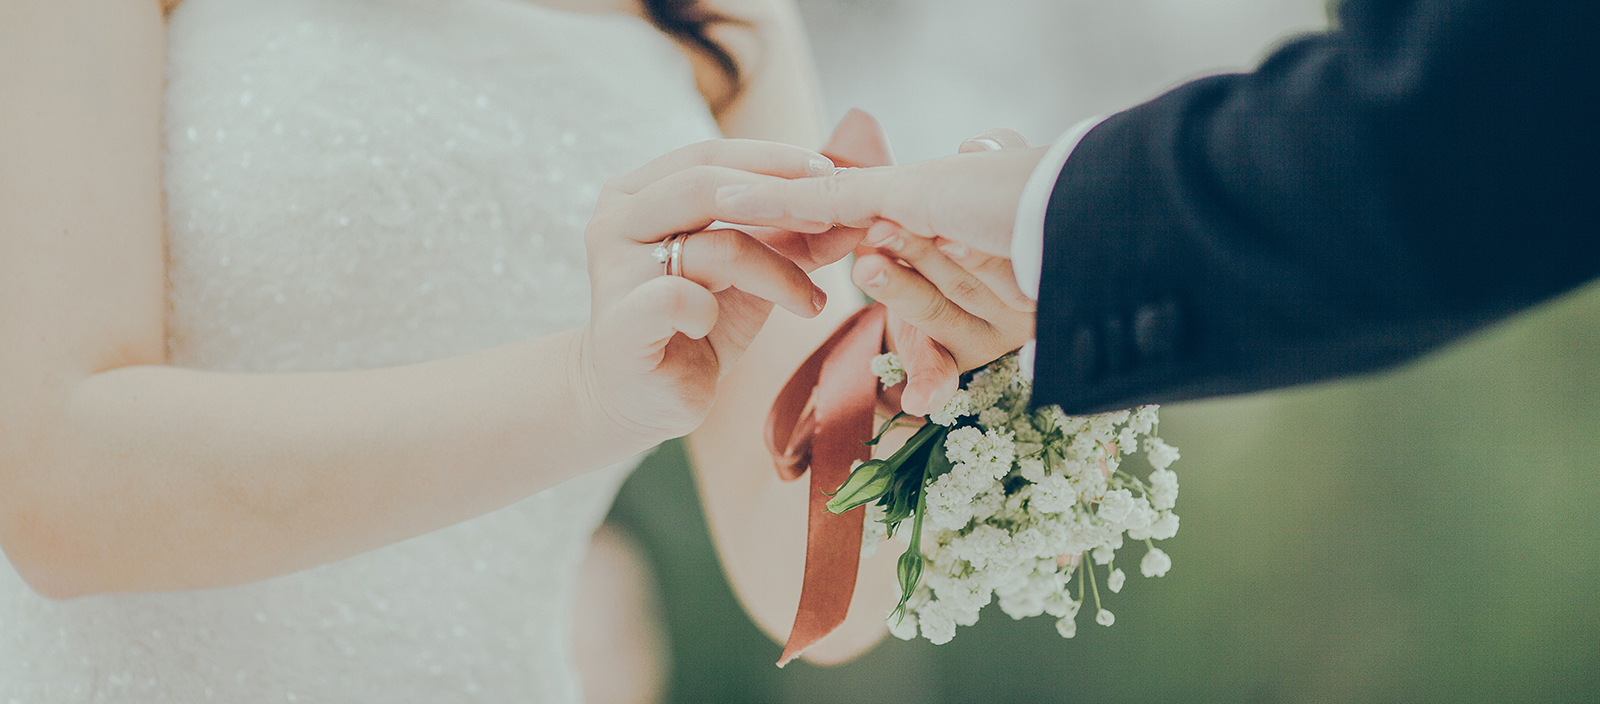 Planning Your Special Day? - Let us cater for you